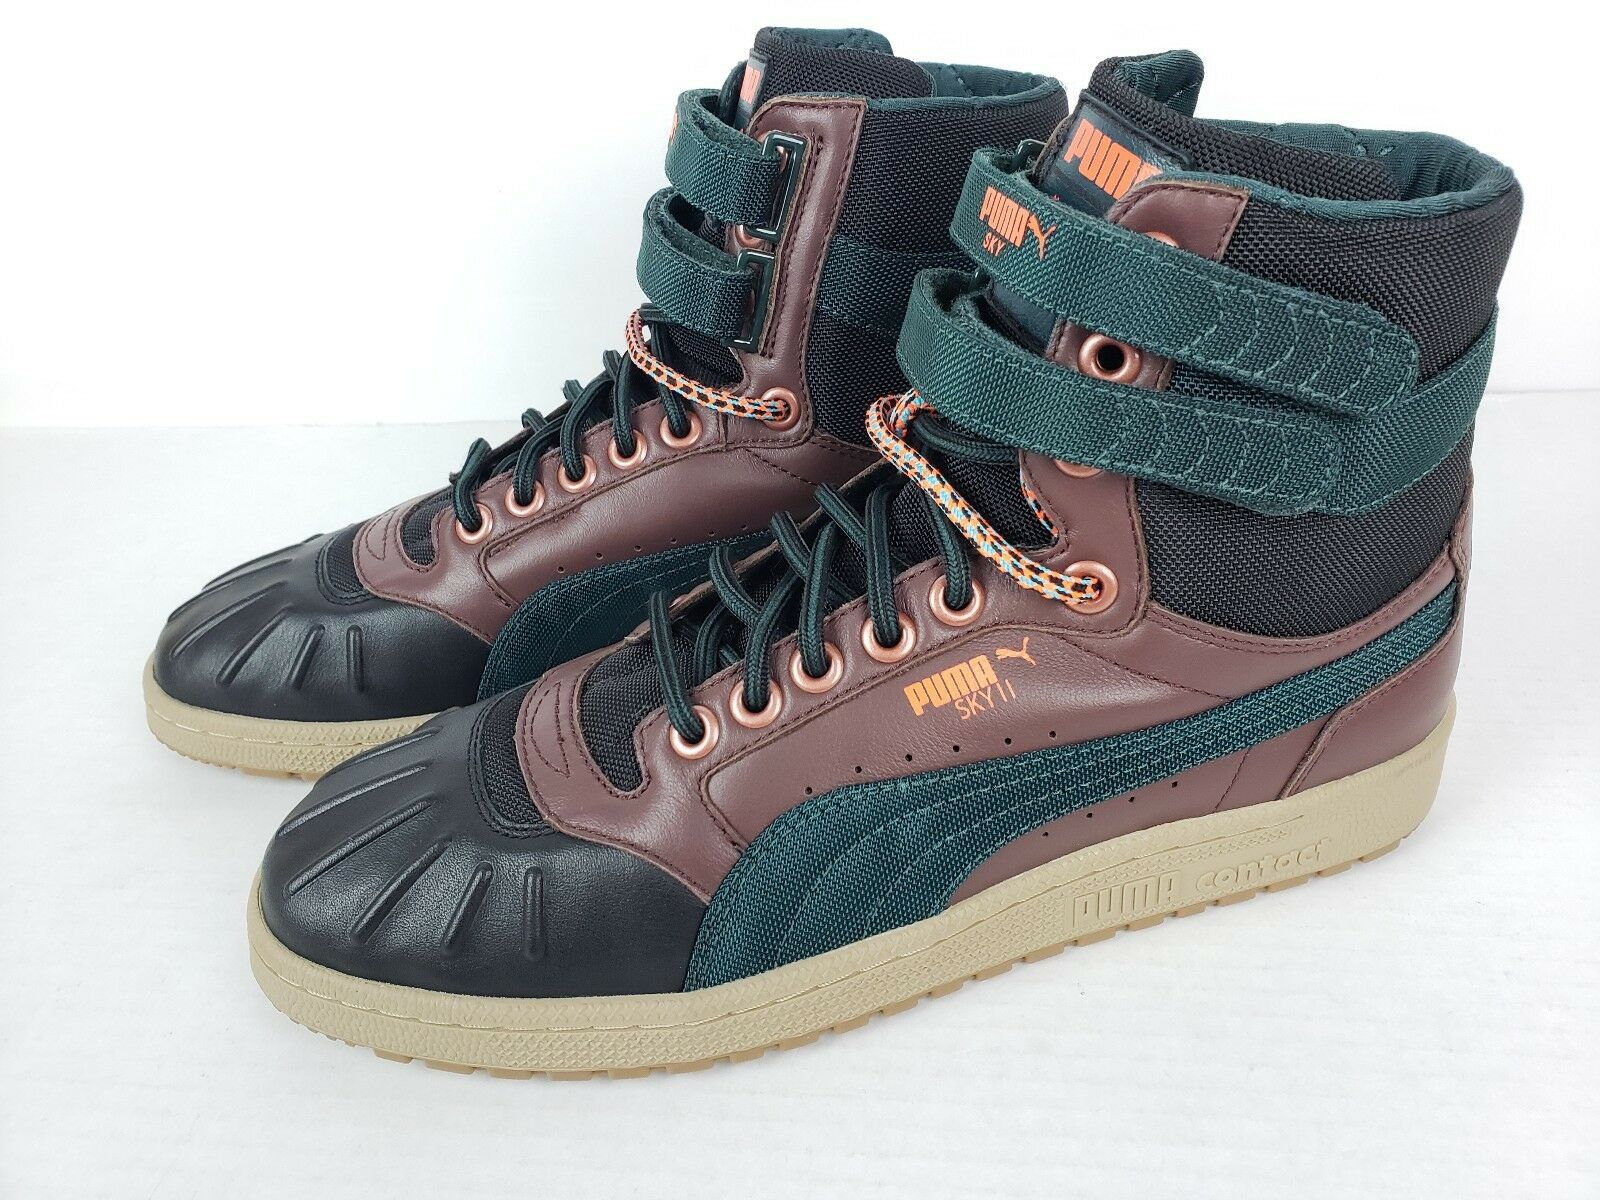 Puma Sky II High Duck Winter Sneakers Boot Brown Green Black Mens Size 10.5